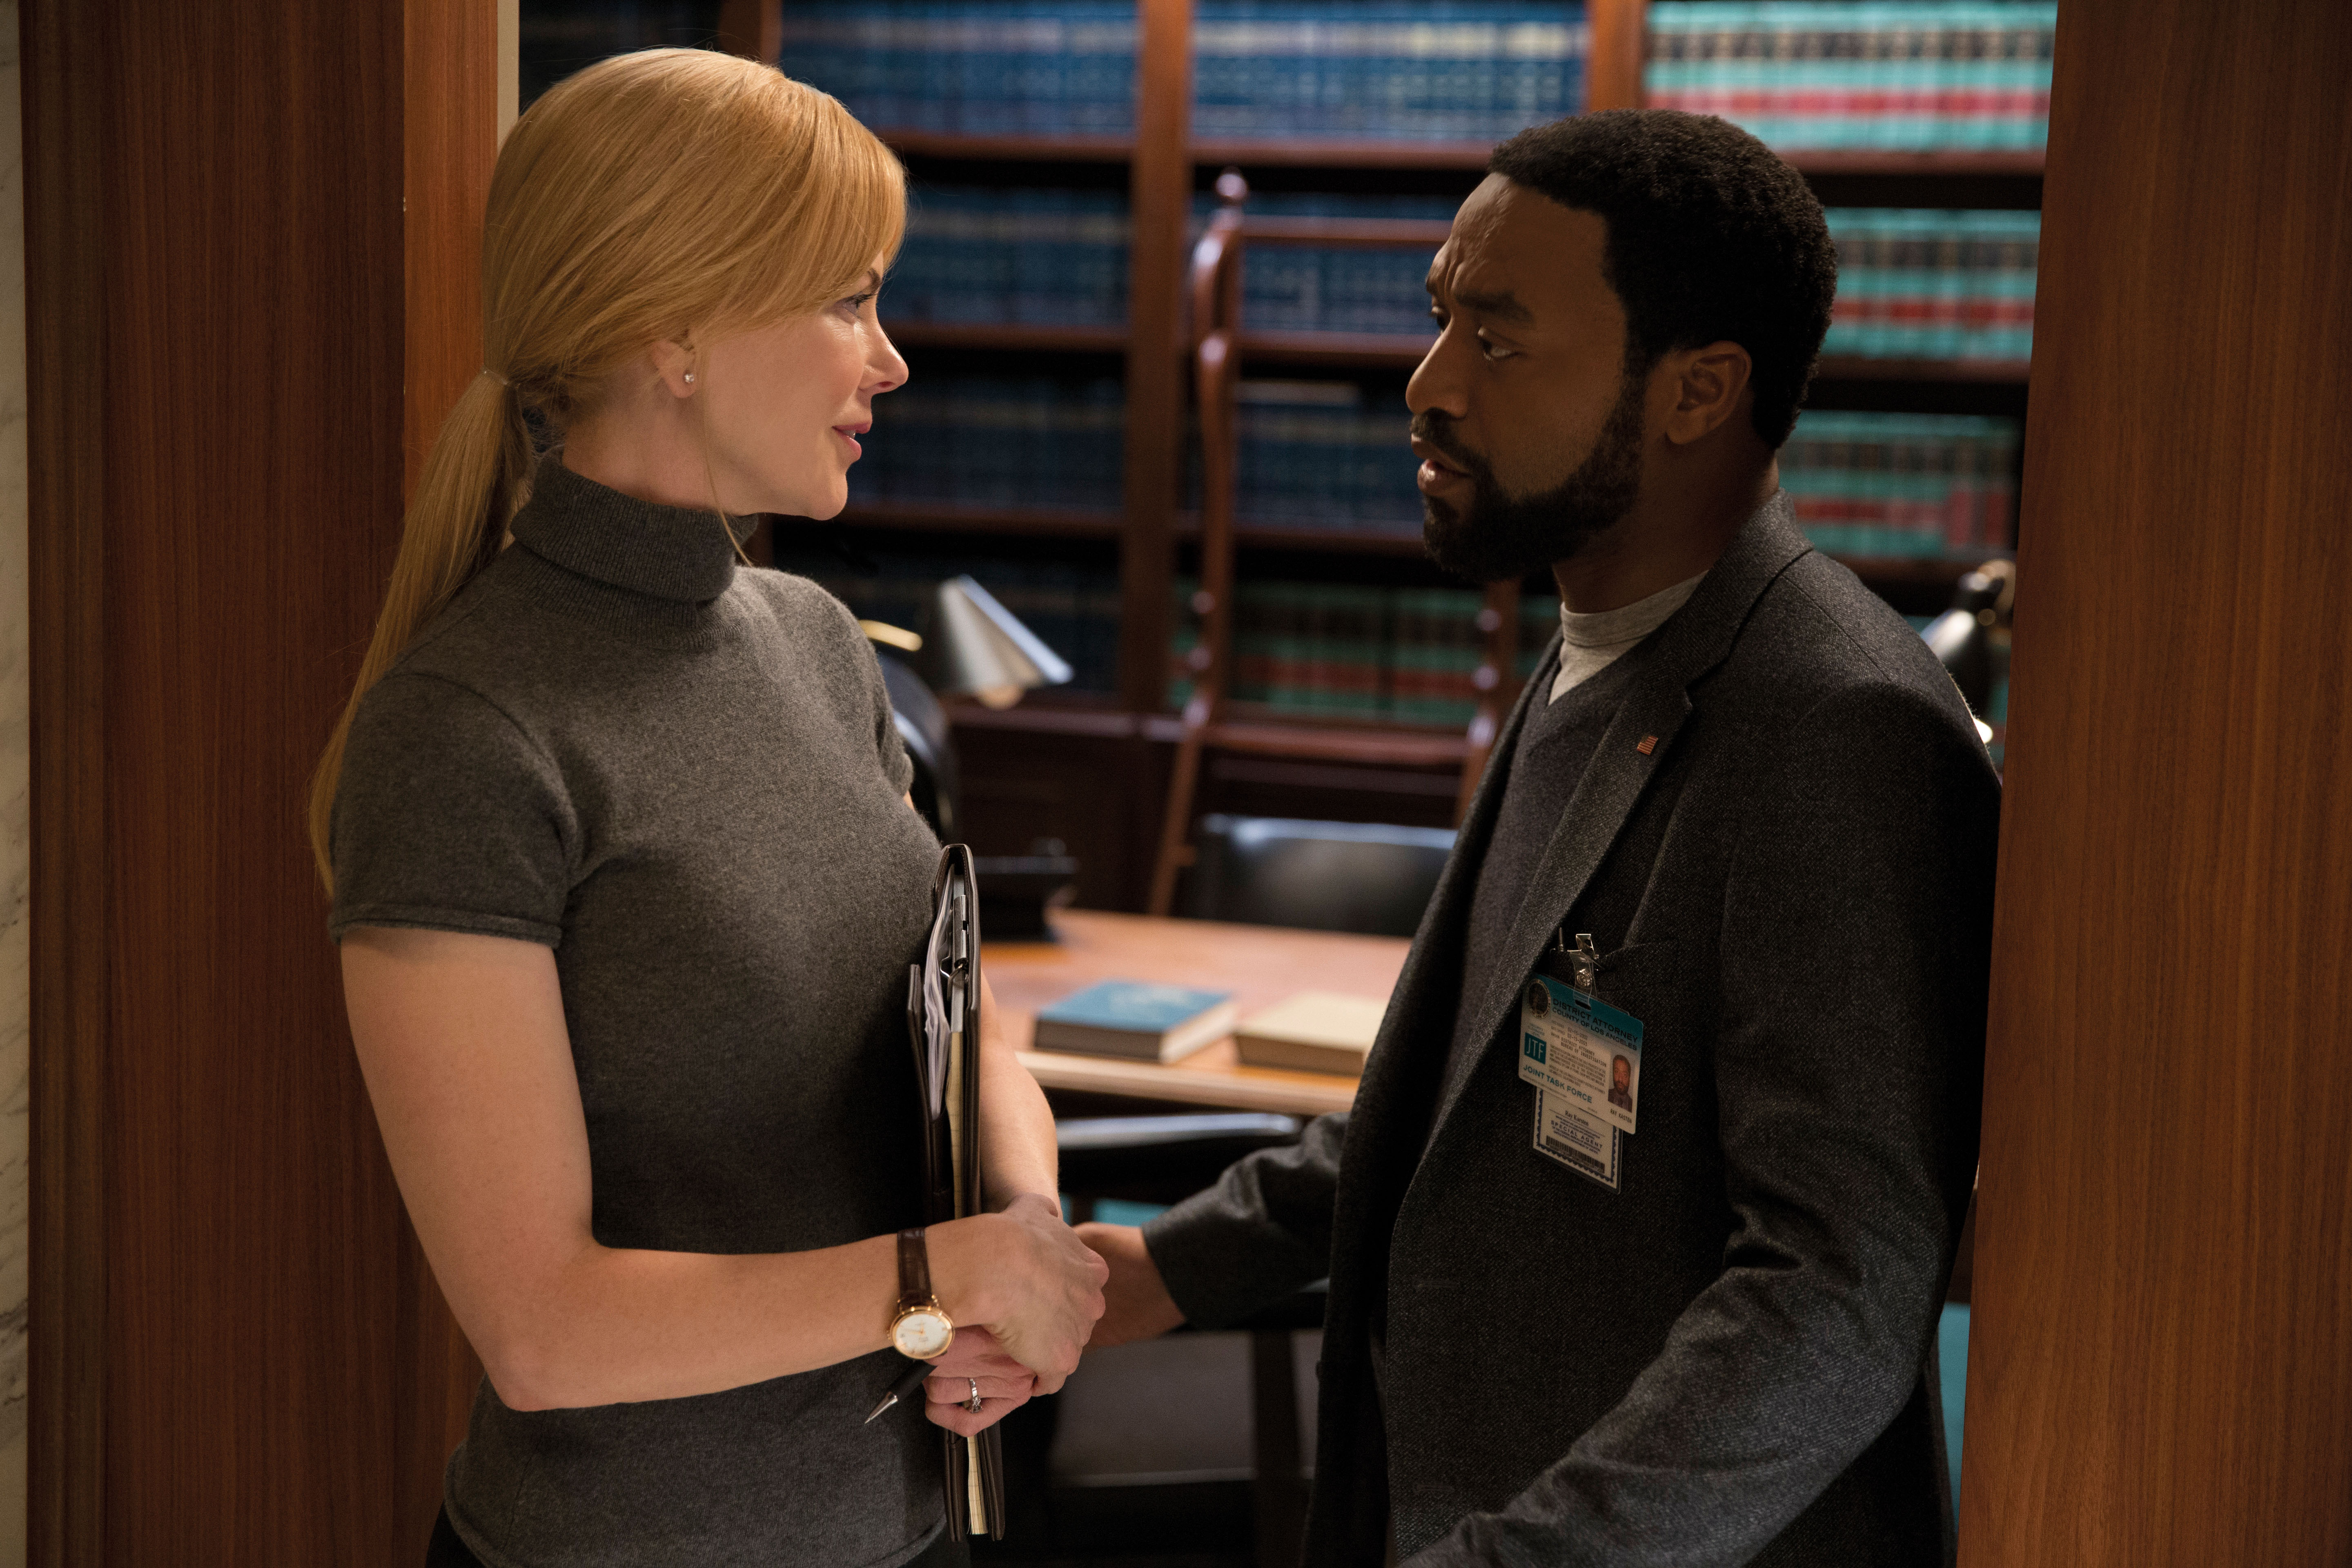 (L-R) NICOLE KIDMAN and CHIWETEL EJIOFOR star in SECRET IN THEIR EYES.